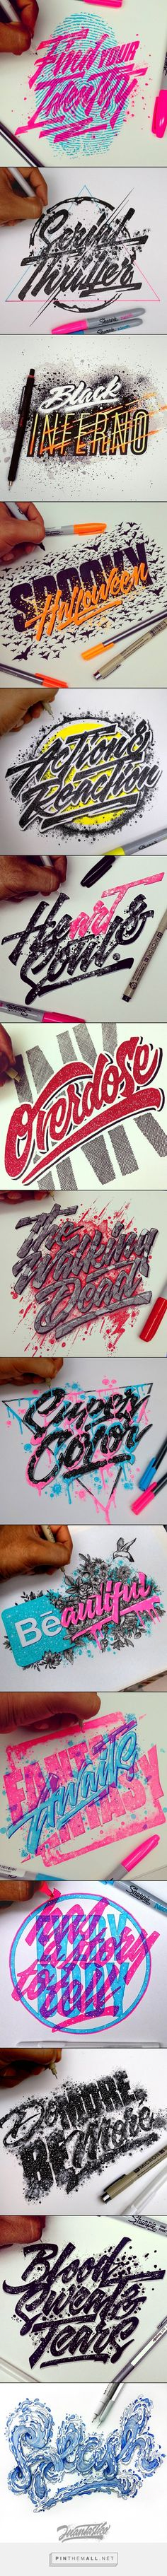 Hand-lettering designs by Juantastico   From up North